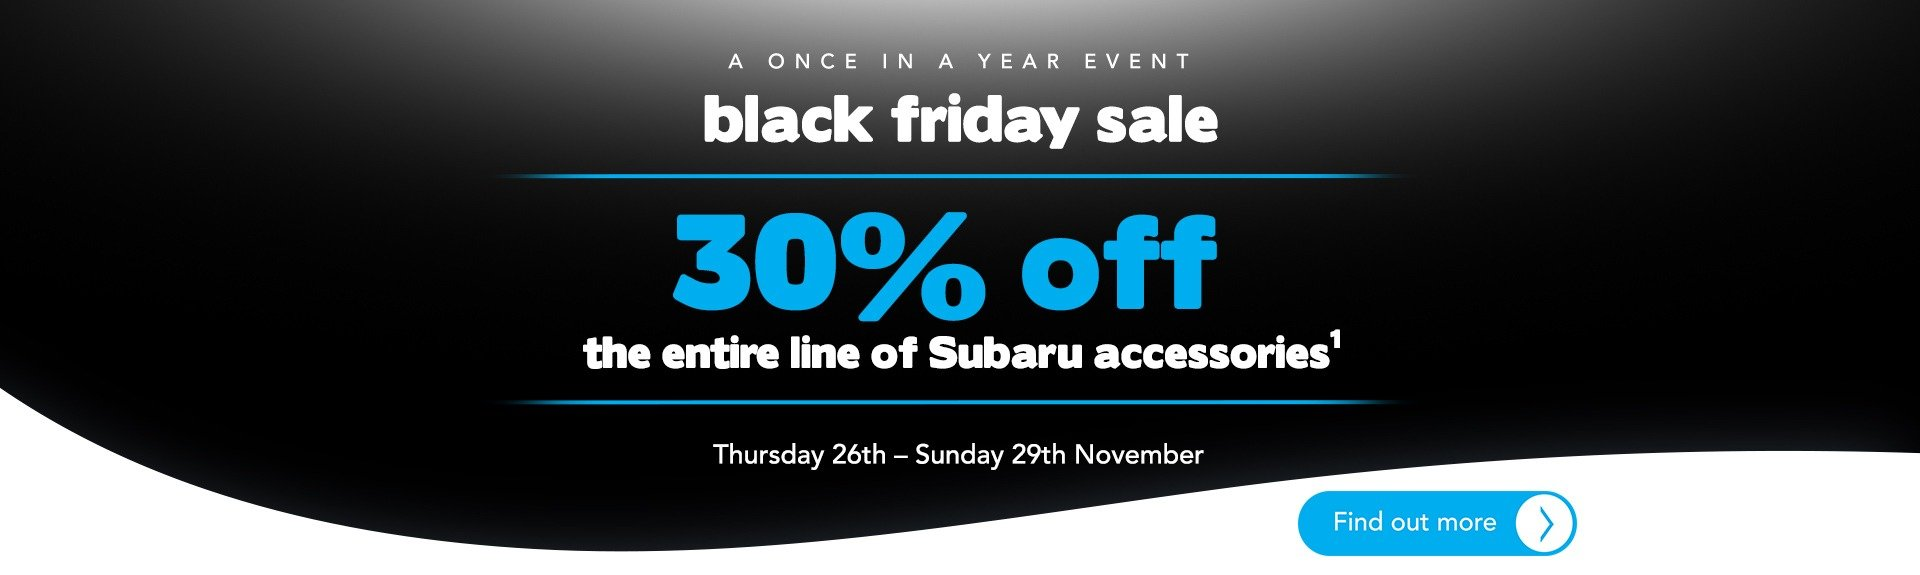 Trivett Subaru - Black Friday Sale